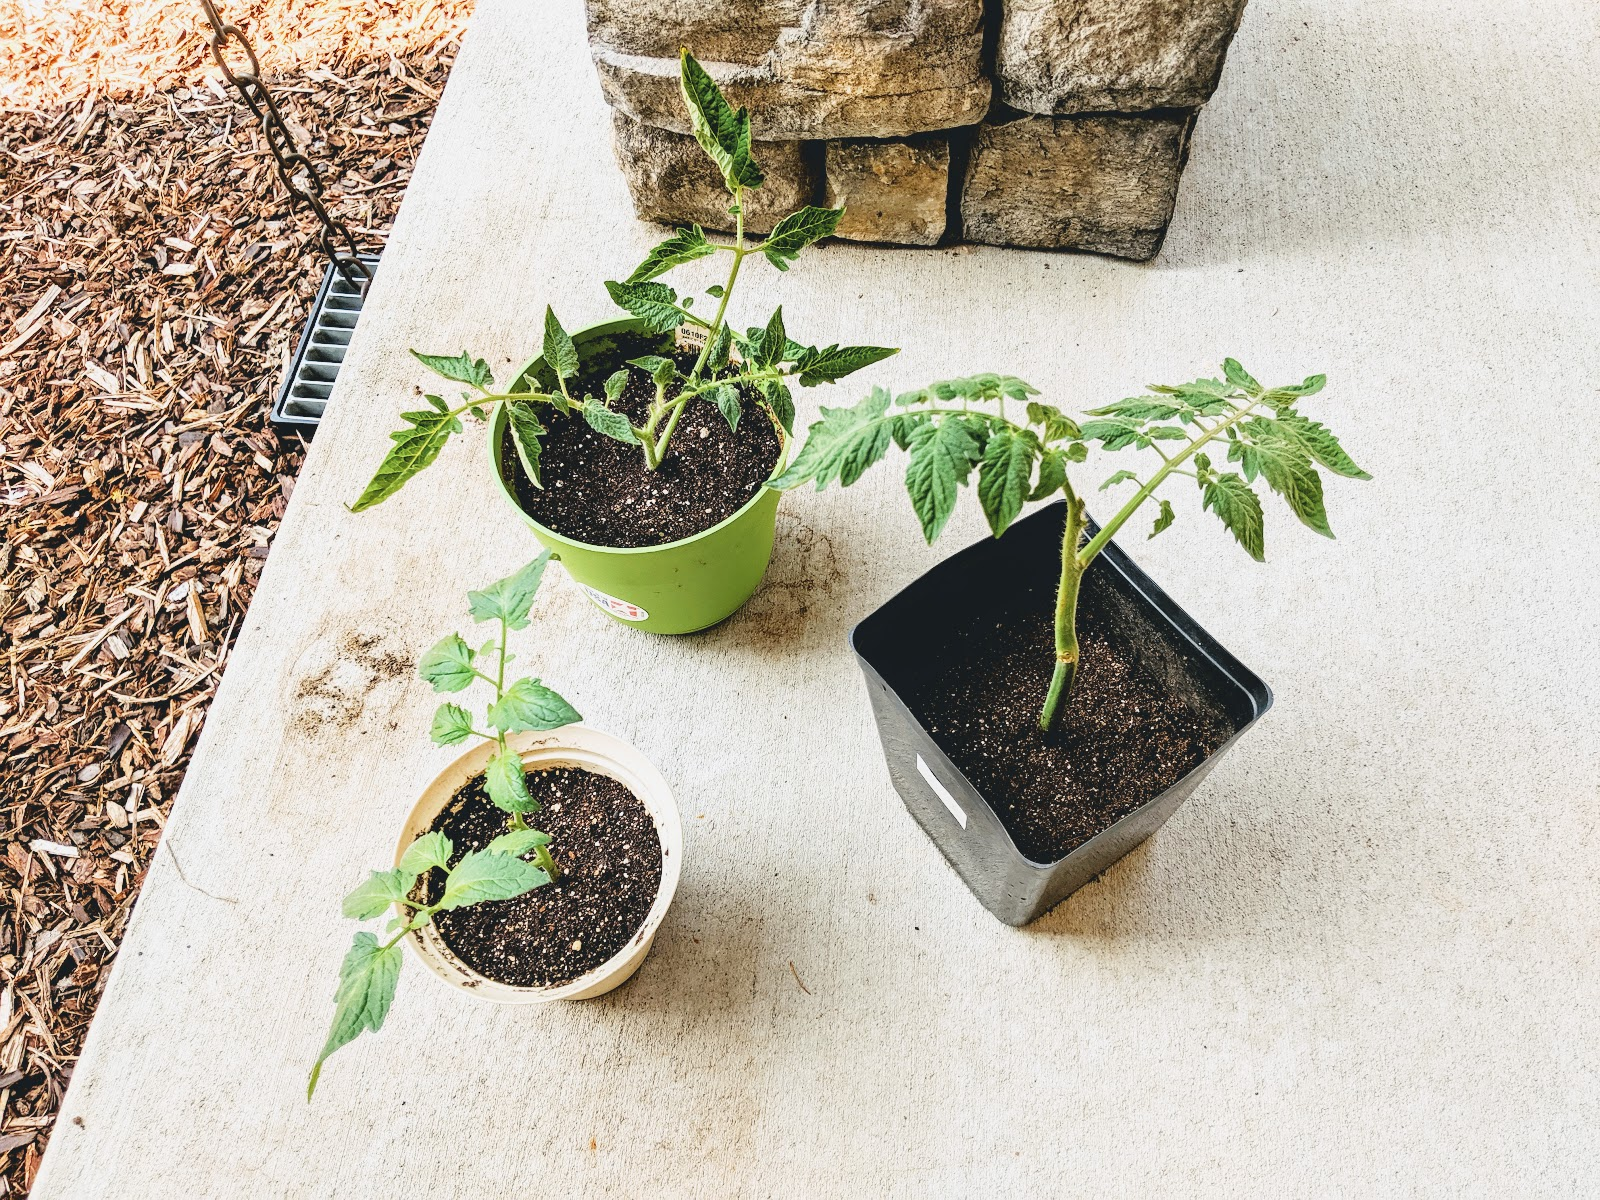 How to propagate tomatoes from cuttings